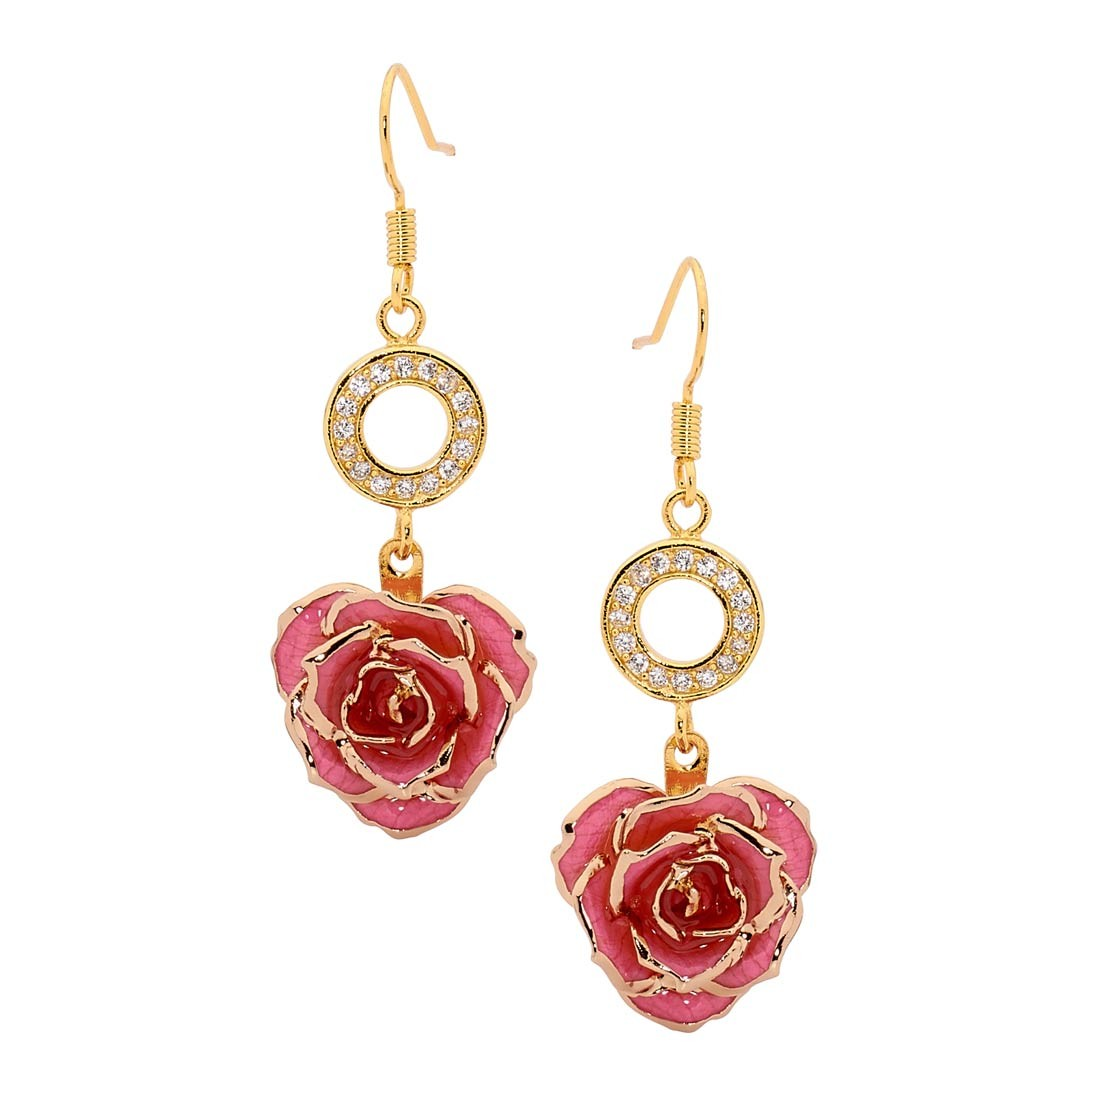 Gold Dipped Rose & Pink Matched Jewelry Set in Heart Theme